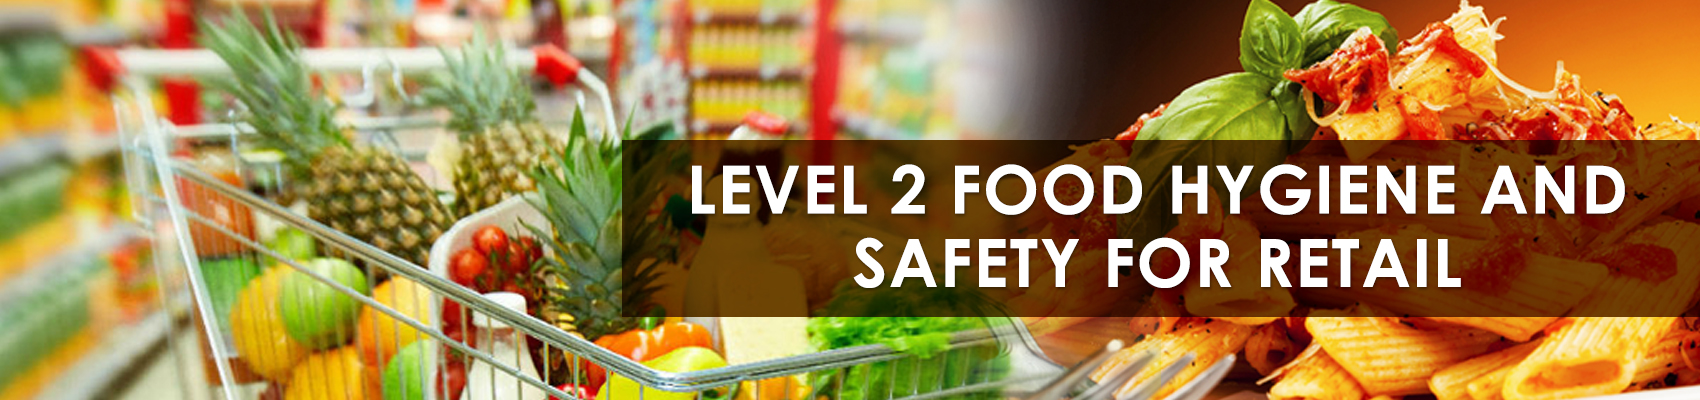 Level 2 Food Hygiene and Safety for Retail - GREEN WORLD